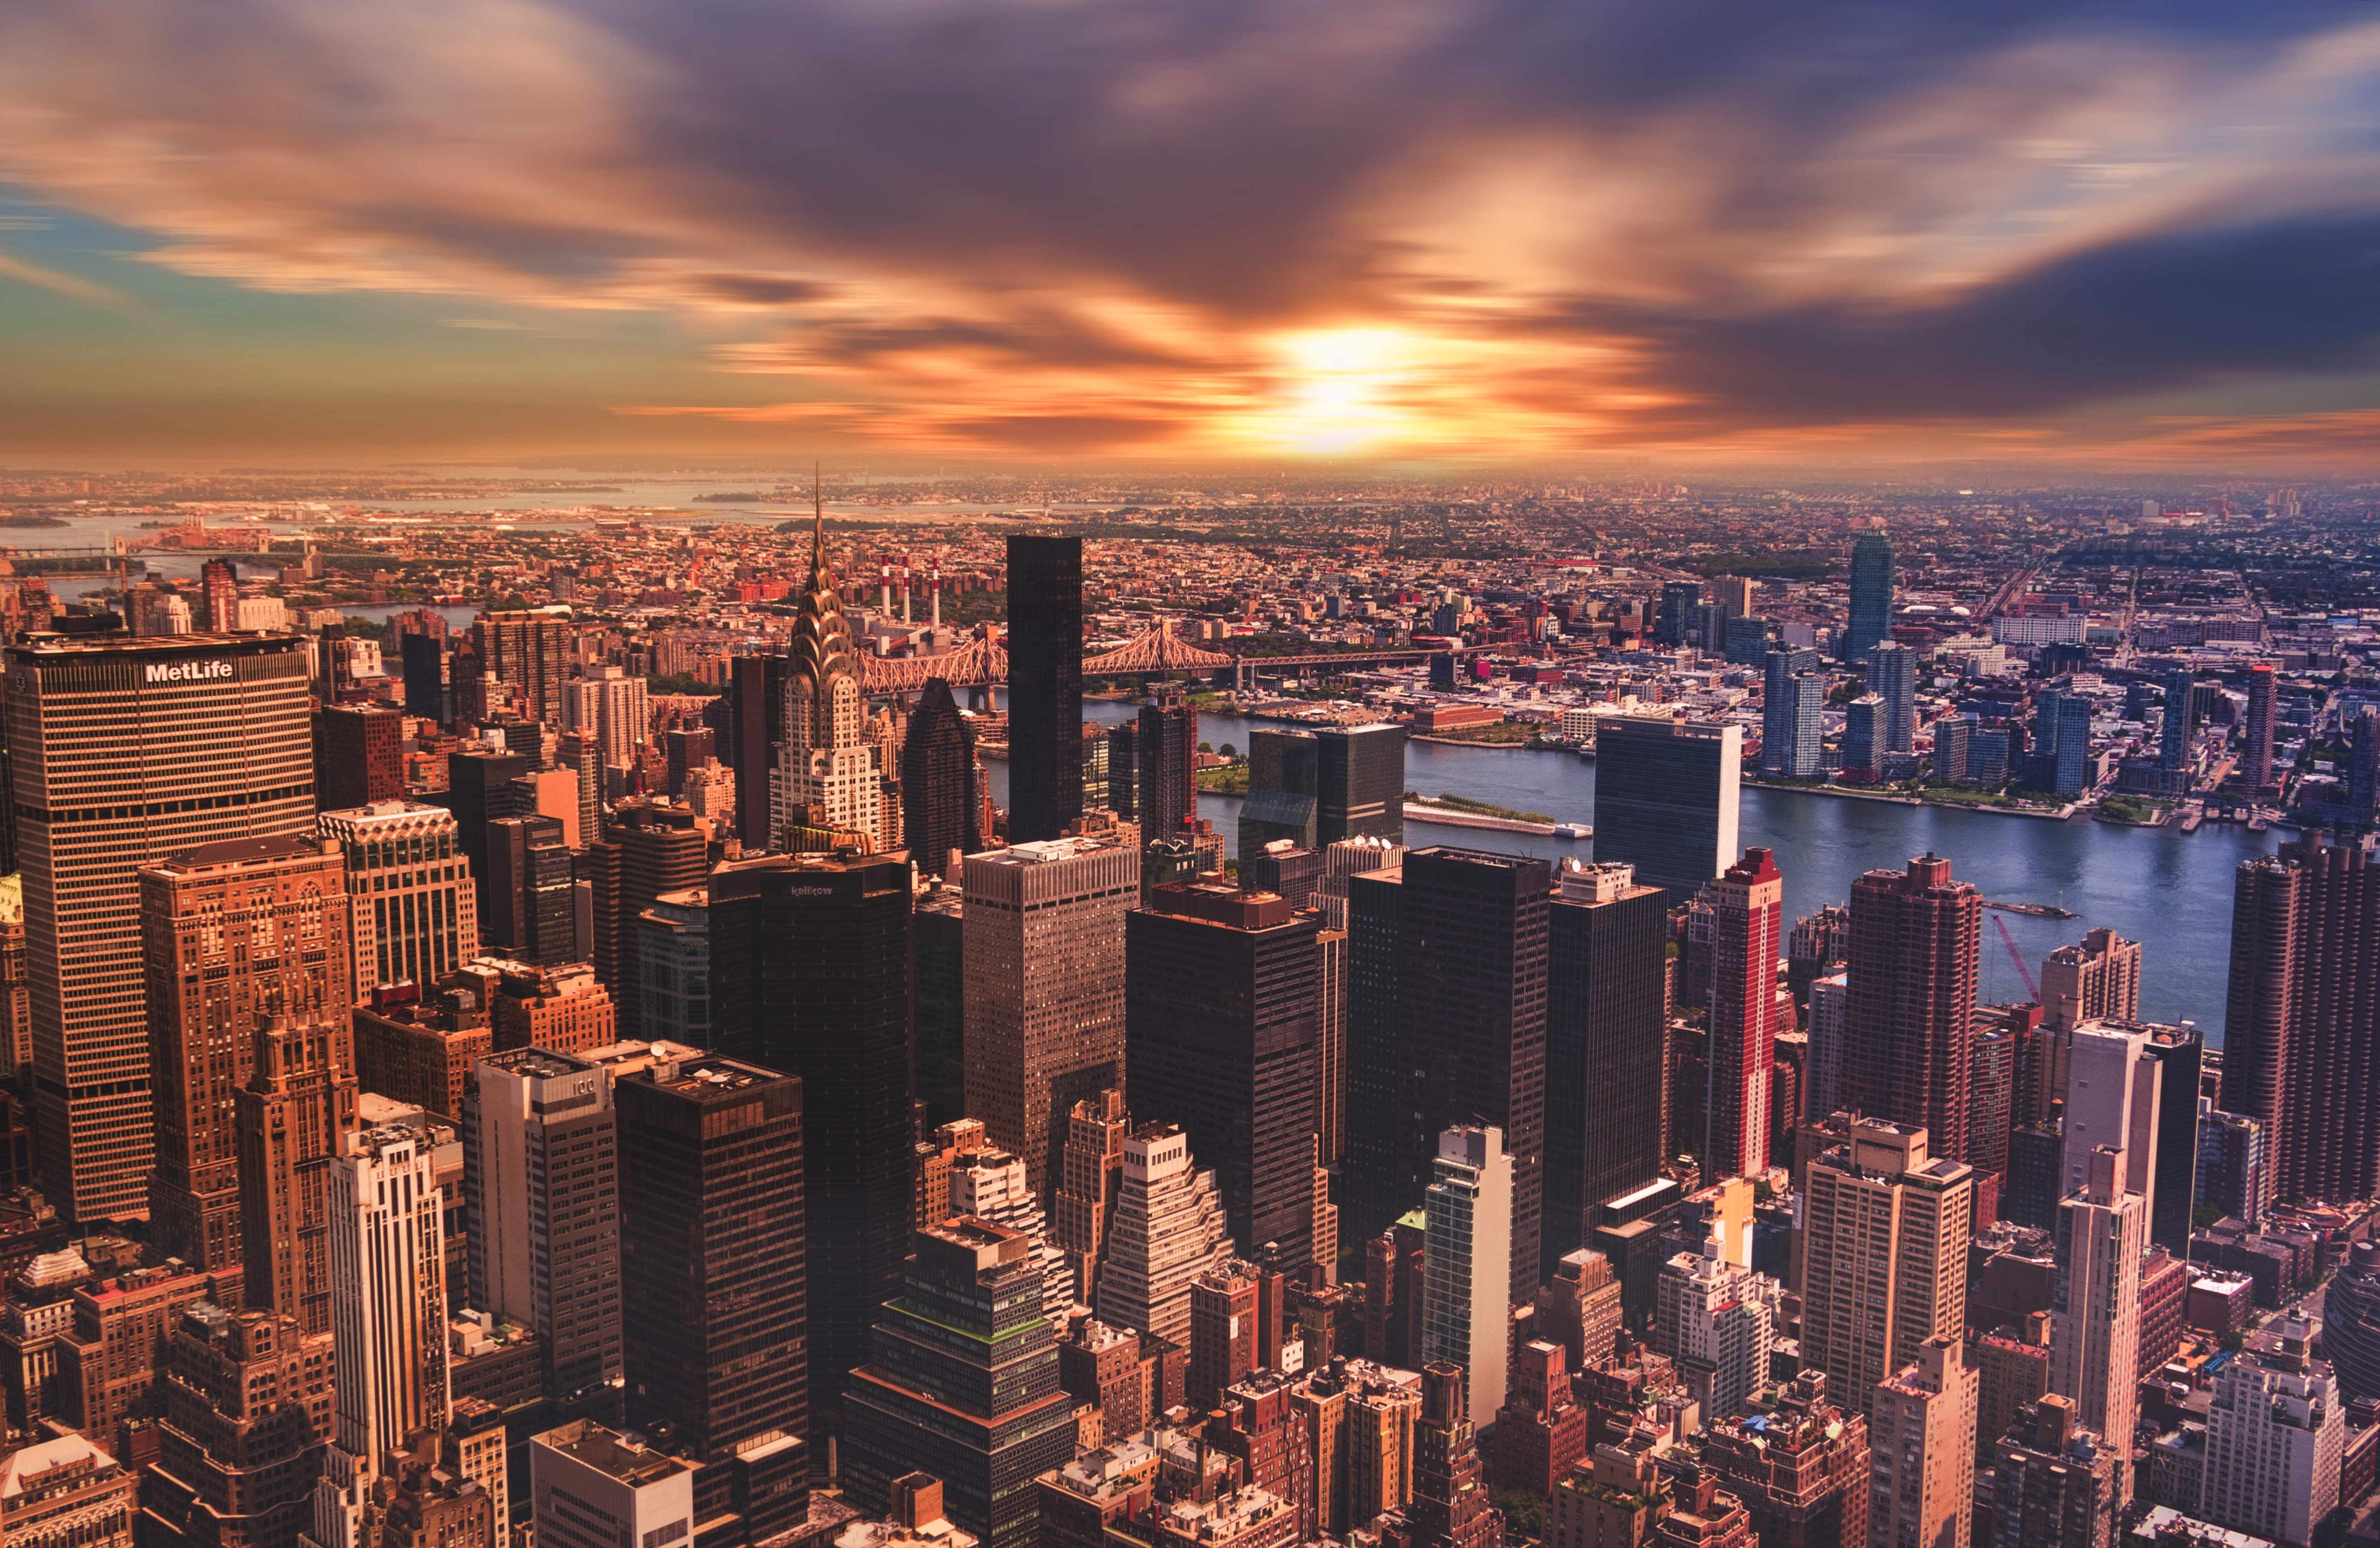 as you can see most of the images display the skyline of new york city london or paris no wonder since these cities make beautiful city photography